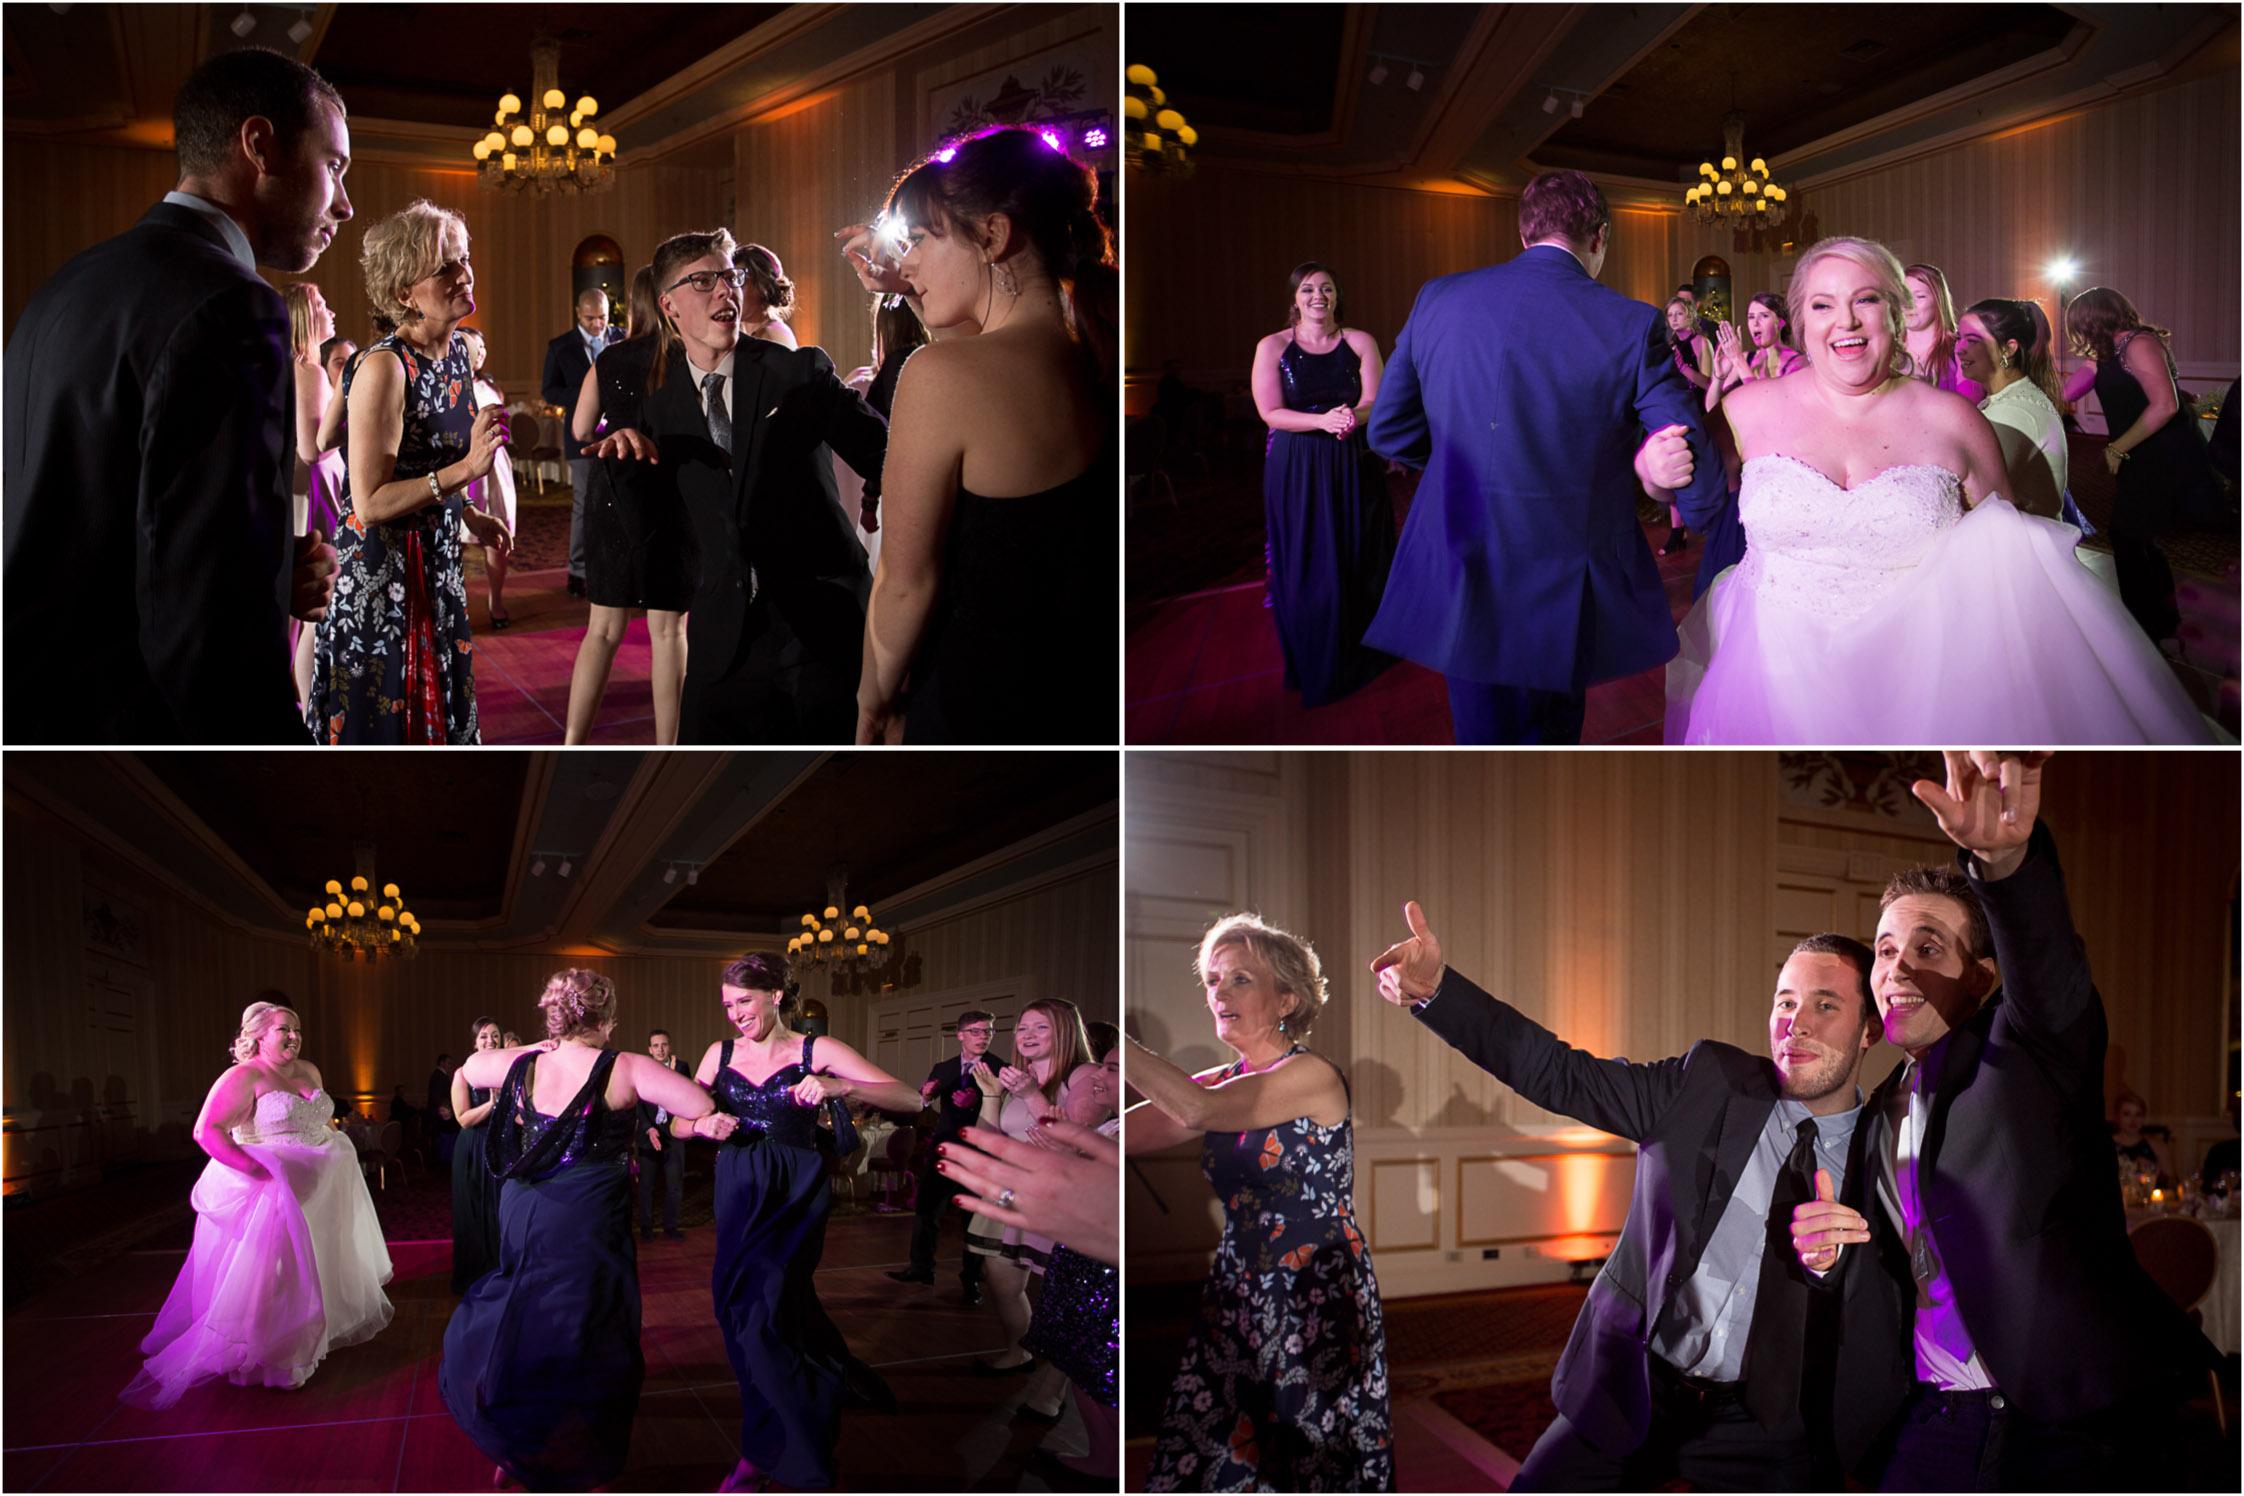 21-the-st-paul-hotel-minnesota-wedding-reception-dance-fun-mahonen-photography.jpg